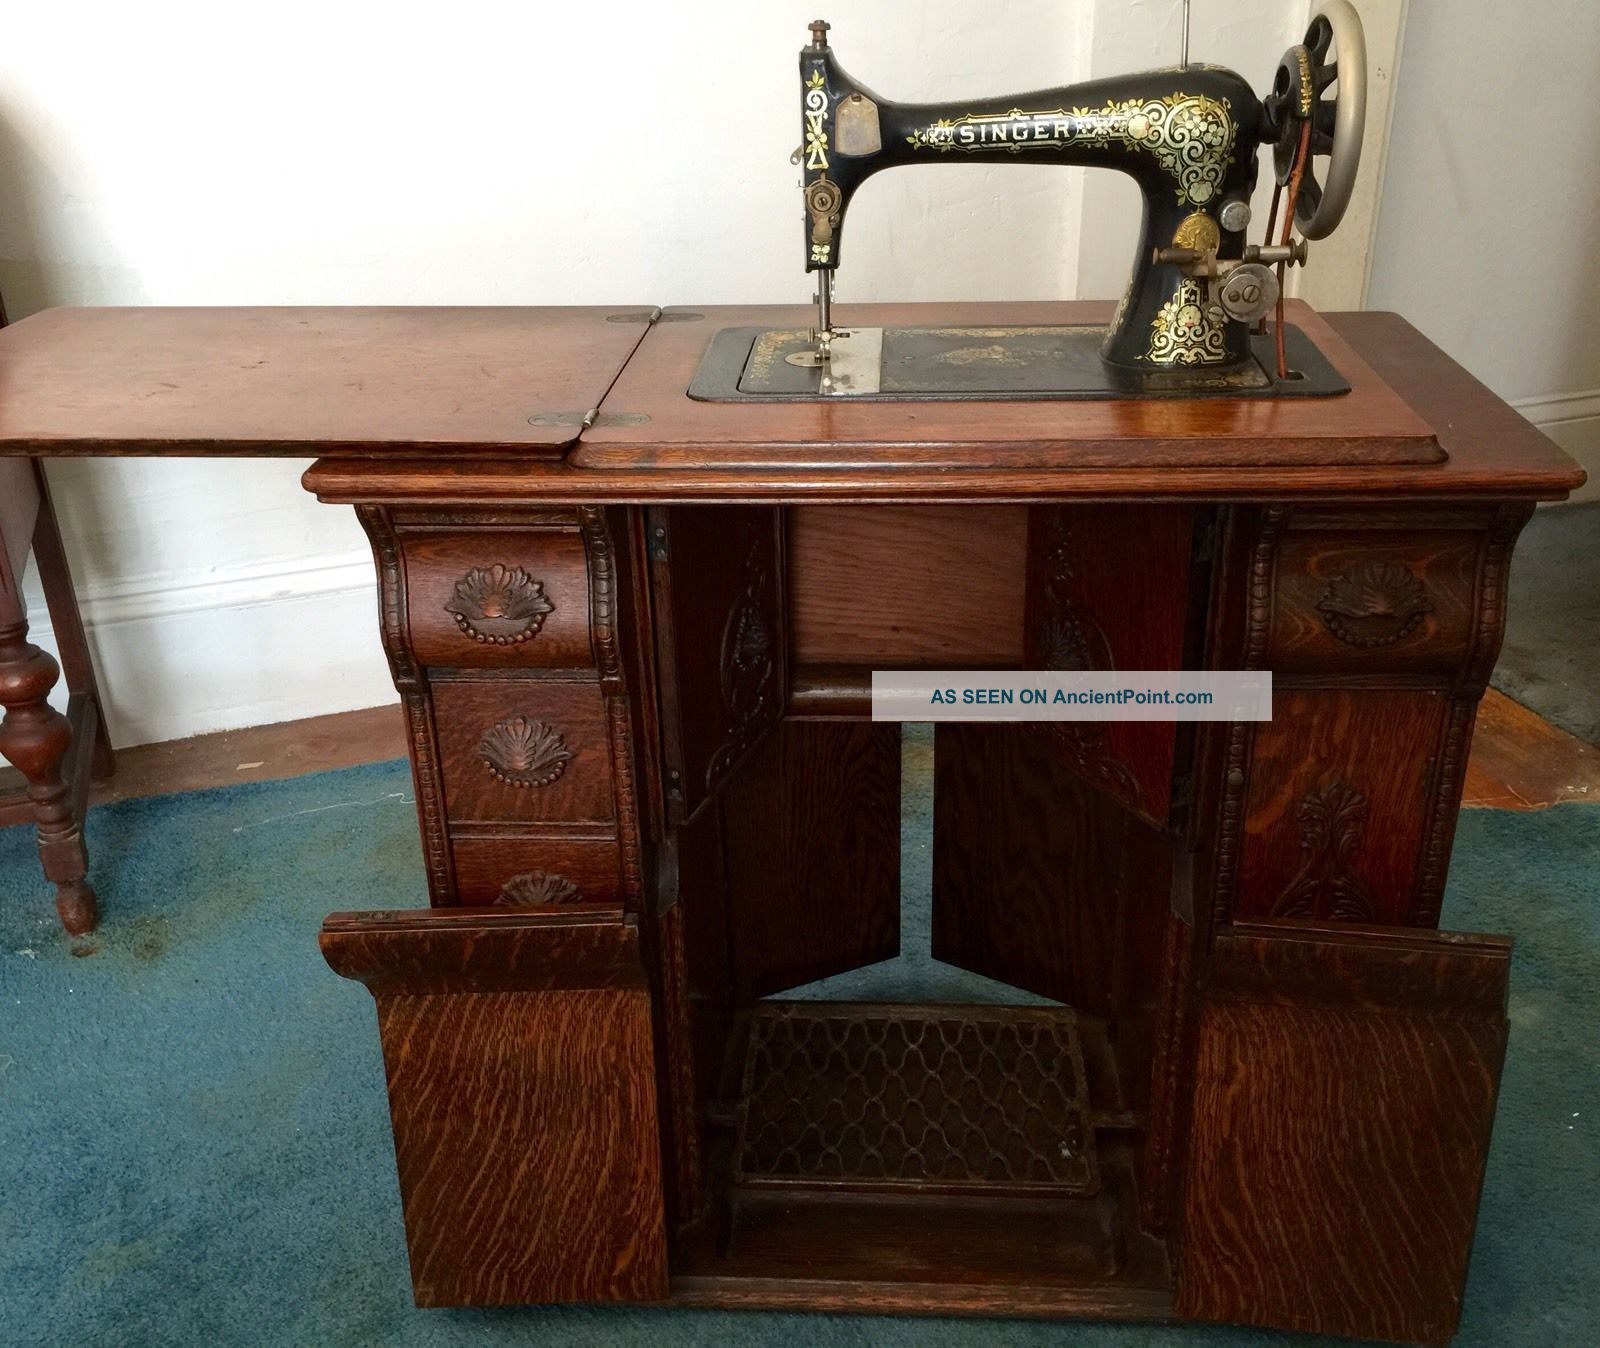 Antique 1909 Singer Sewing Machine In Oak Parlor Cabinet Sewing Machines photo